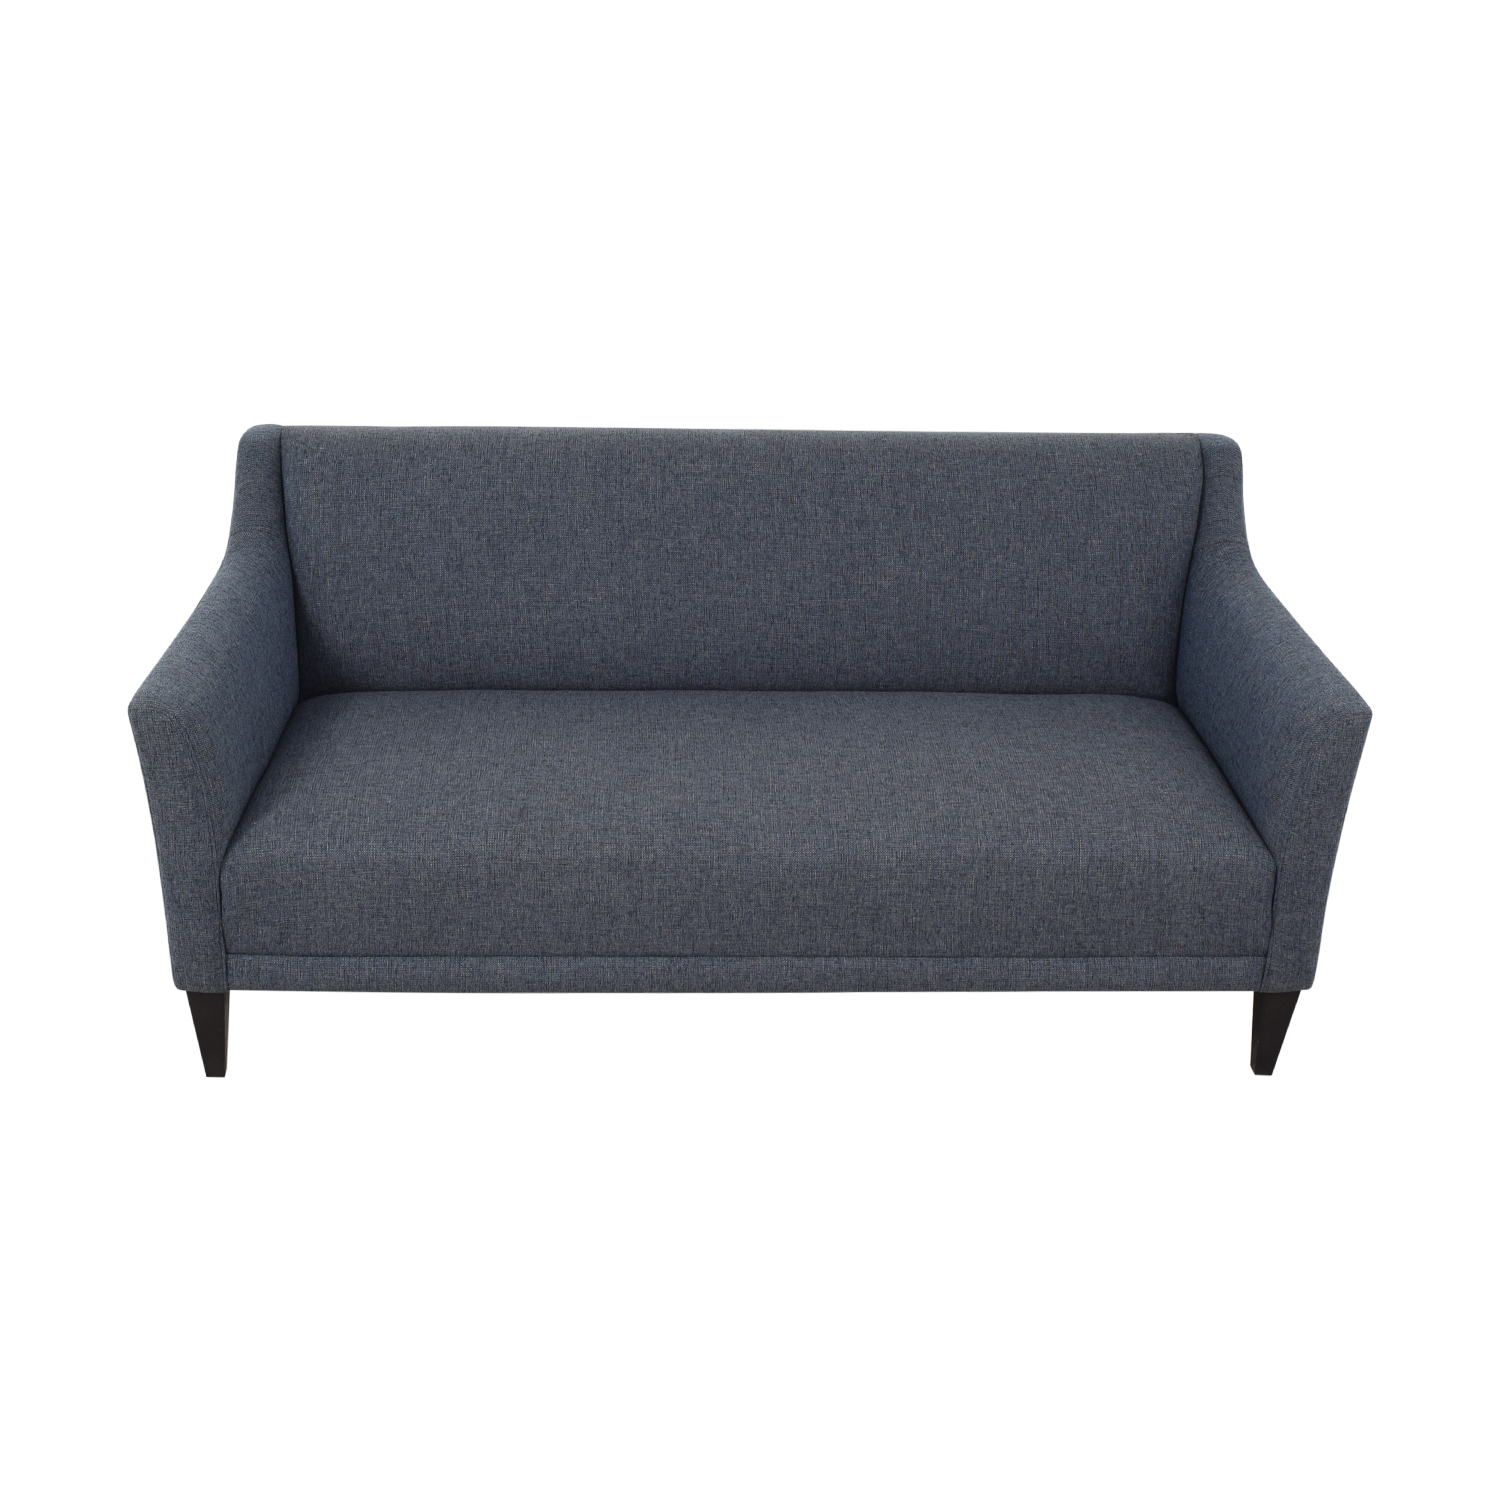 Crate & Barrel Crate & Barrel Margot II Loveseat Loveseats